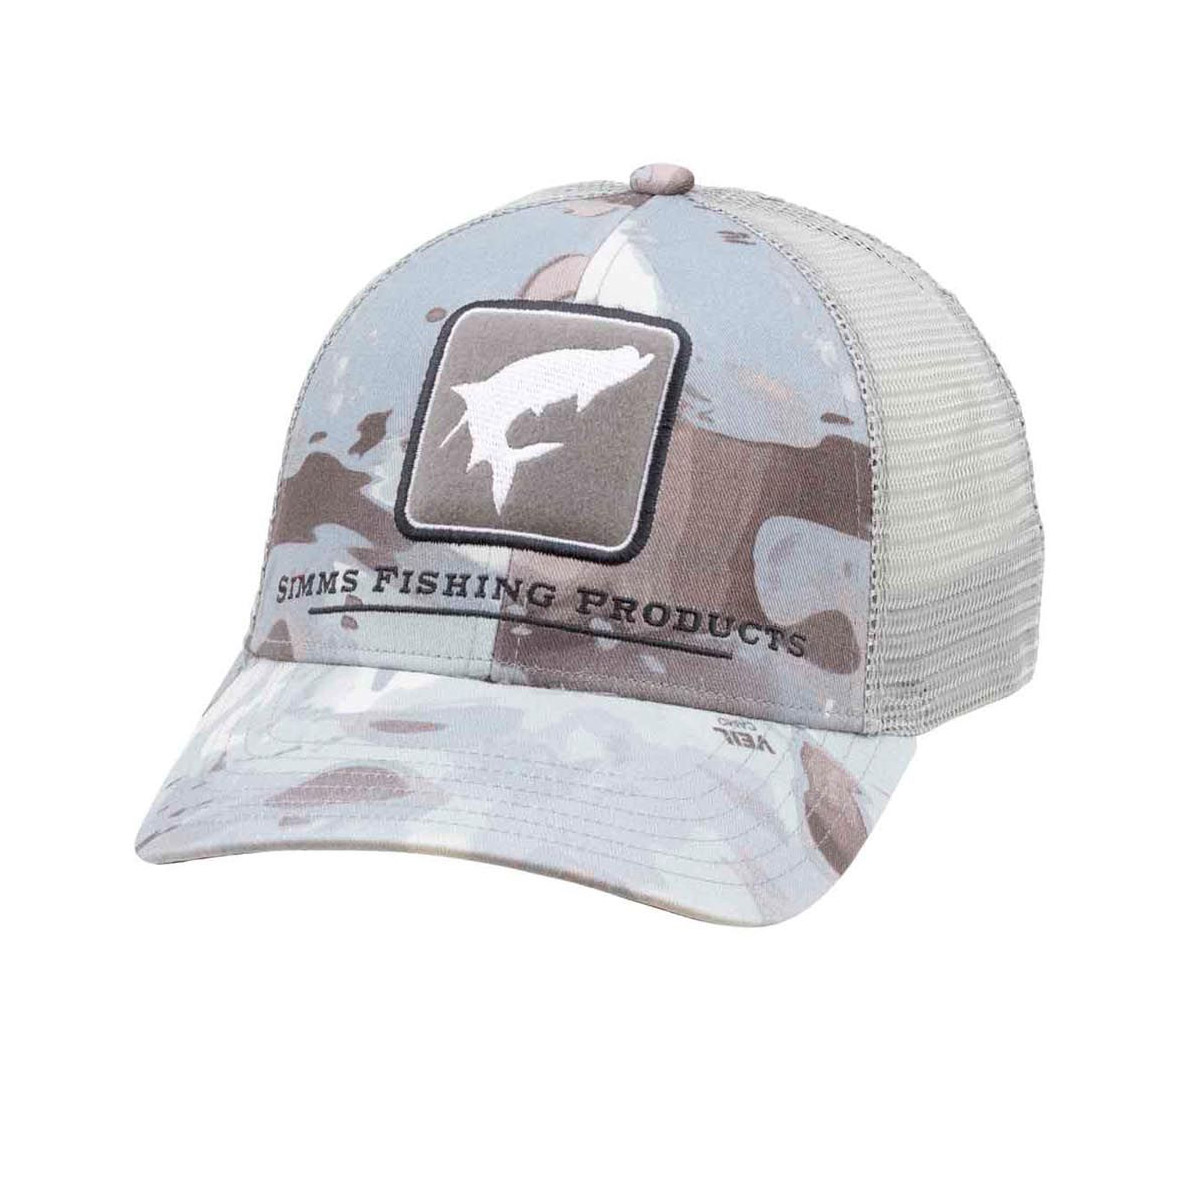 TARPON ICON TRUCKER HAT